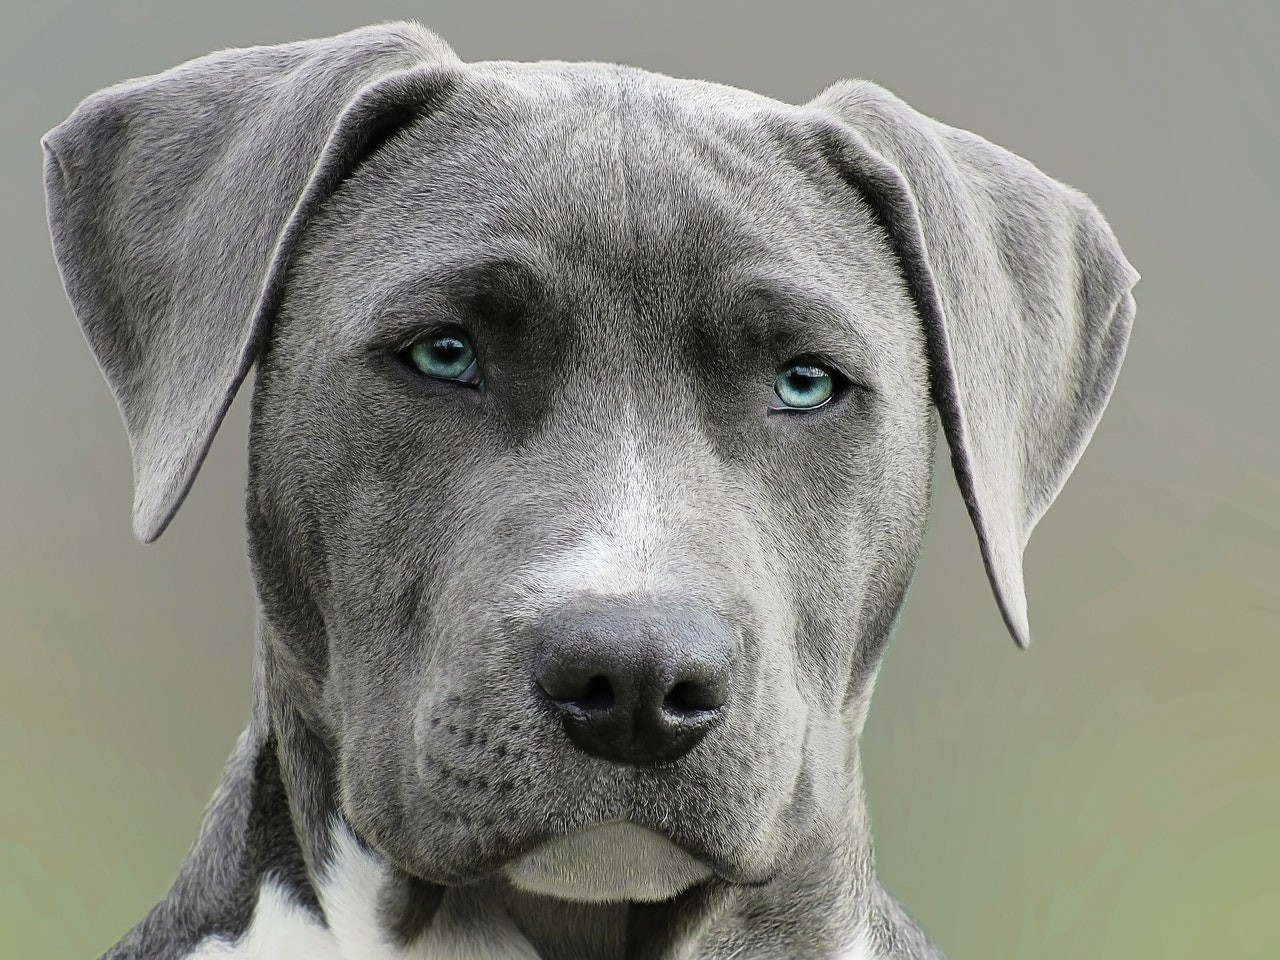 a baby pitbull, grey with blue eyes, looking straight at the camera